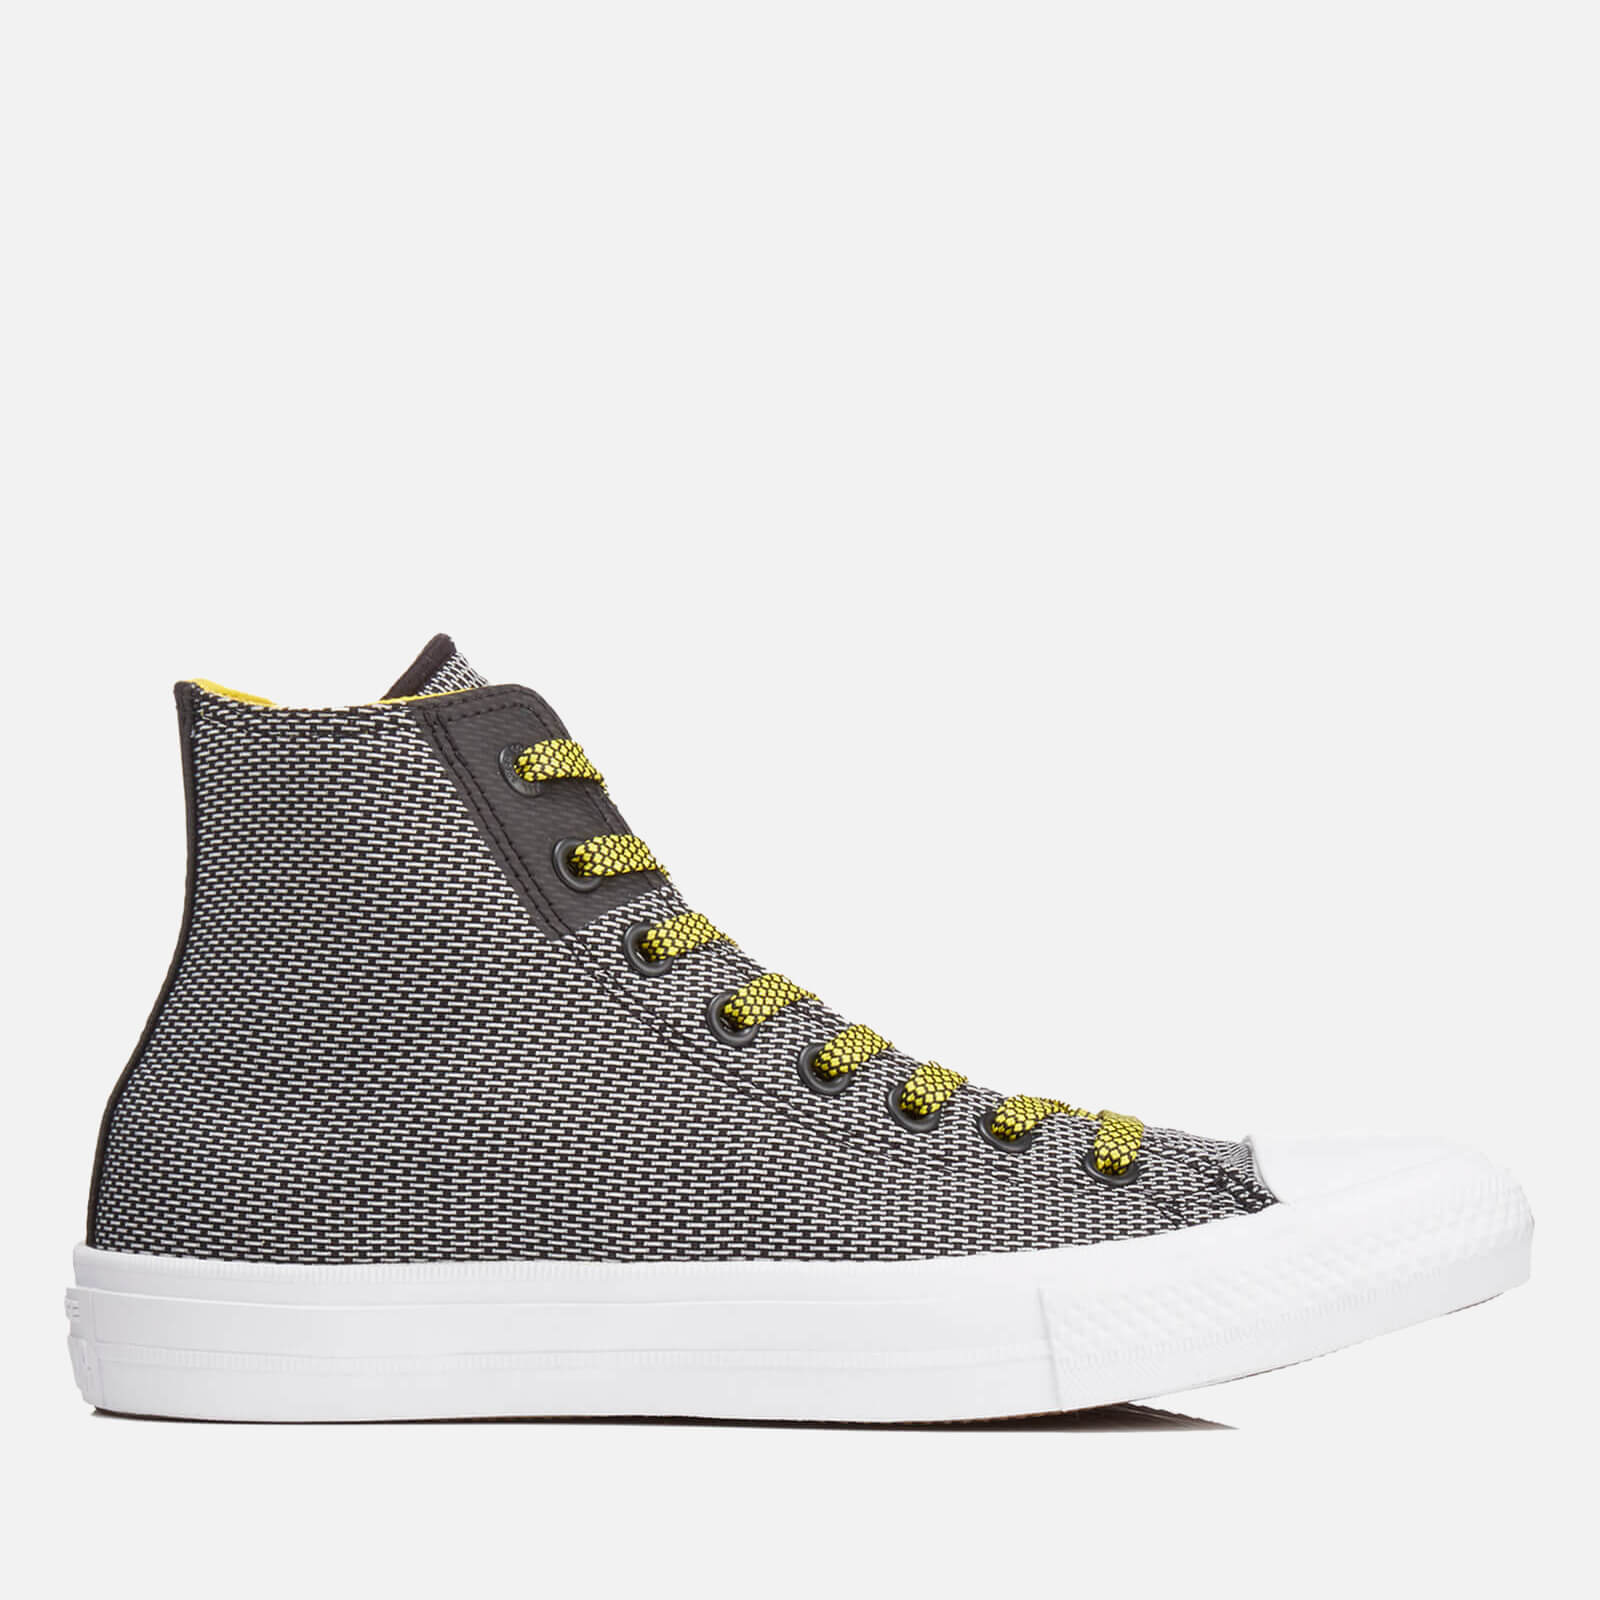 d85b48e50e00 Converse Men s Chuck Taylor All Star II Hi-Top Trainers - Black White Fresh  Yellow - Free UK Delivery over £50